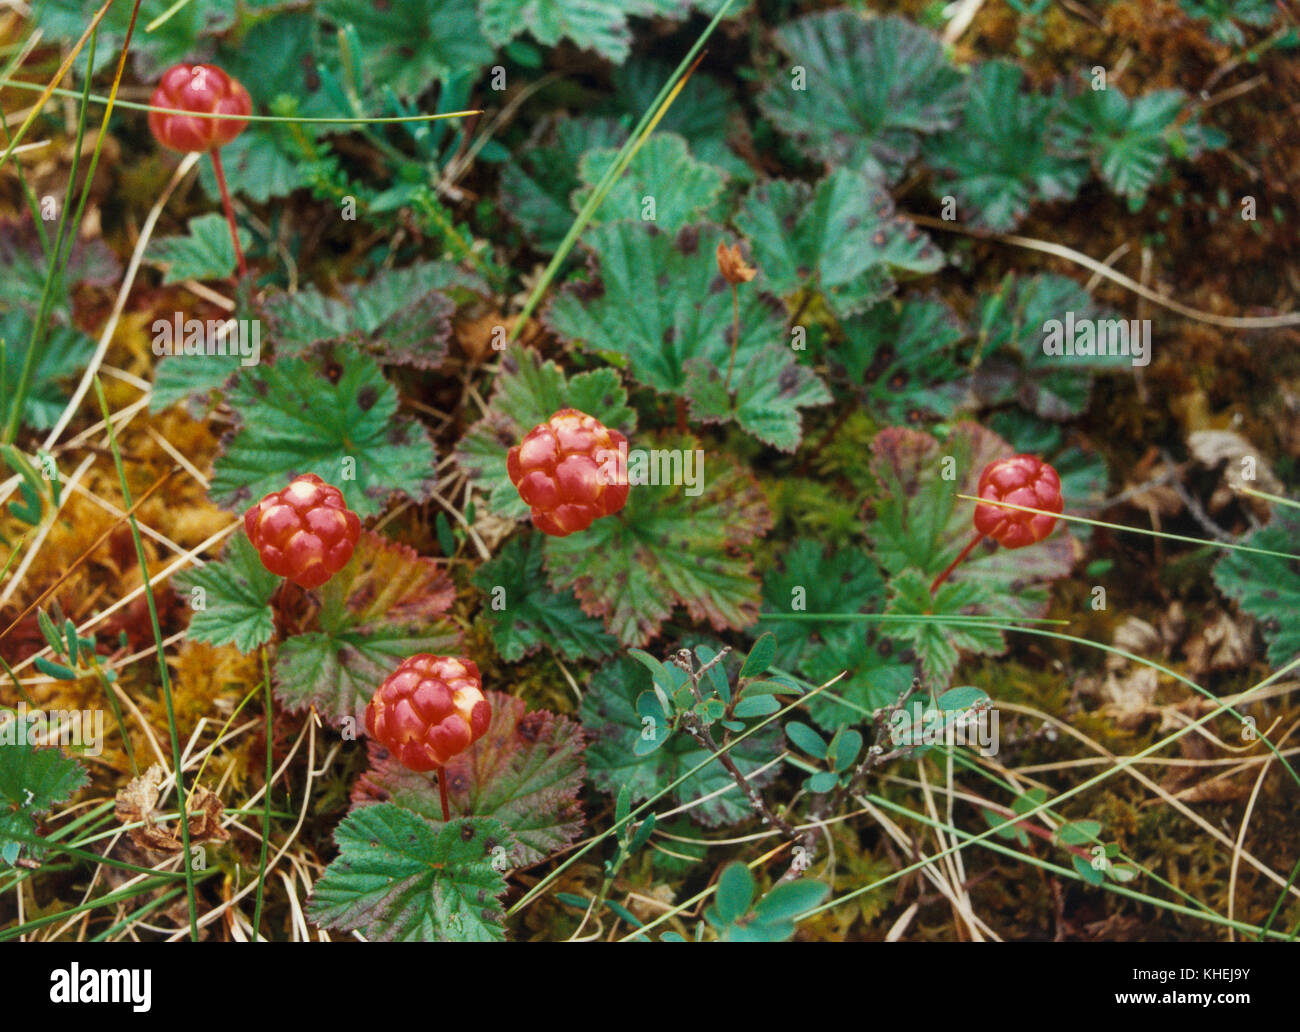 CLOUDBERRY plant with berrys on a mire in northern Sweden 2010 - Stock Image